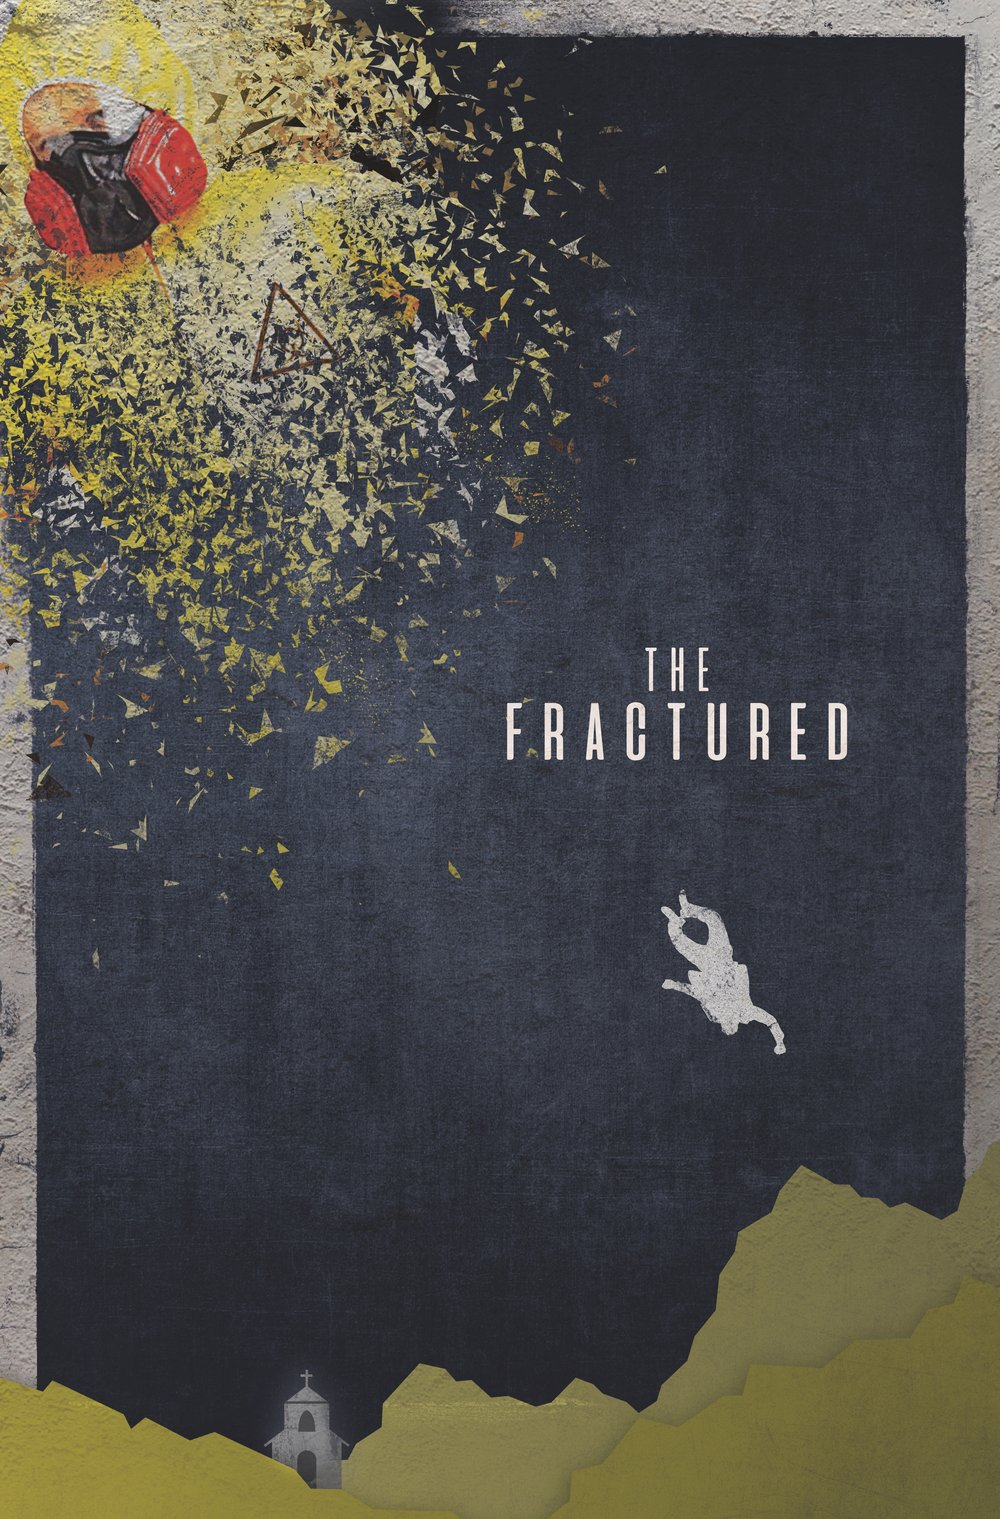 THE FRACTURED - PILOT | SCI FI • DRAMA • MYSTERYLOGLINE: THE FRACTURED follows the disparate lives of a pastor turned smuggler grieving the death of his wife and son, a teenage cancer patient, a guilt-ridden FBI agent coping with PTSD, and a desperate cartel kingpin in need of a miracle. Their lives collide and entwine after a mysterious child in a Hazmat suit causes a dark, Exodus-type of event, offering them all a chance at respite, relief, and the ability to re-write their broken histories.